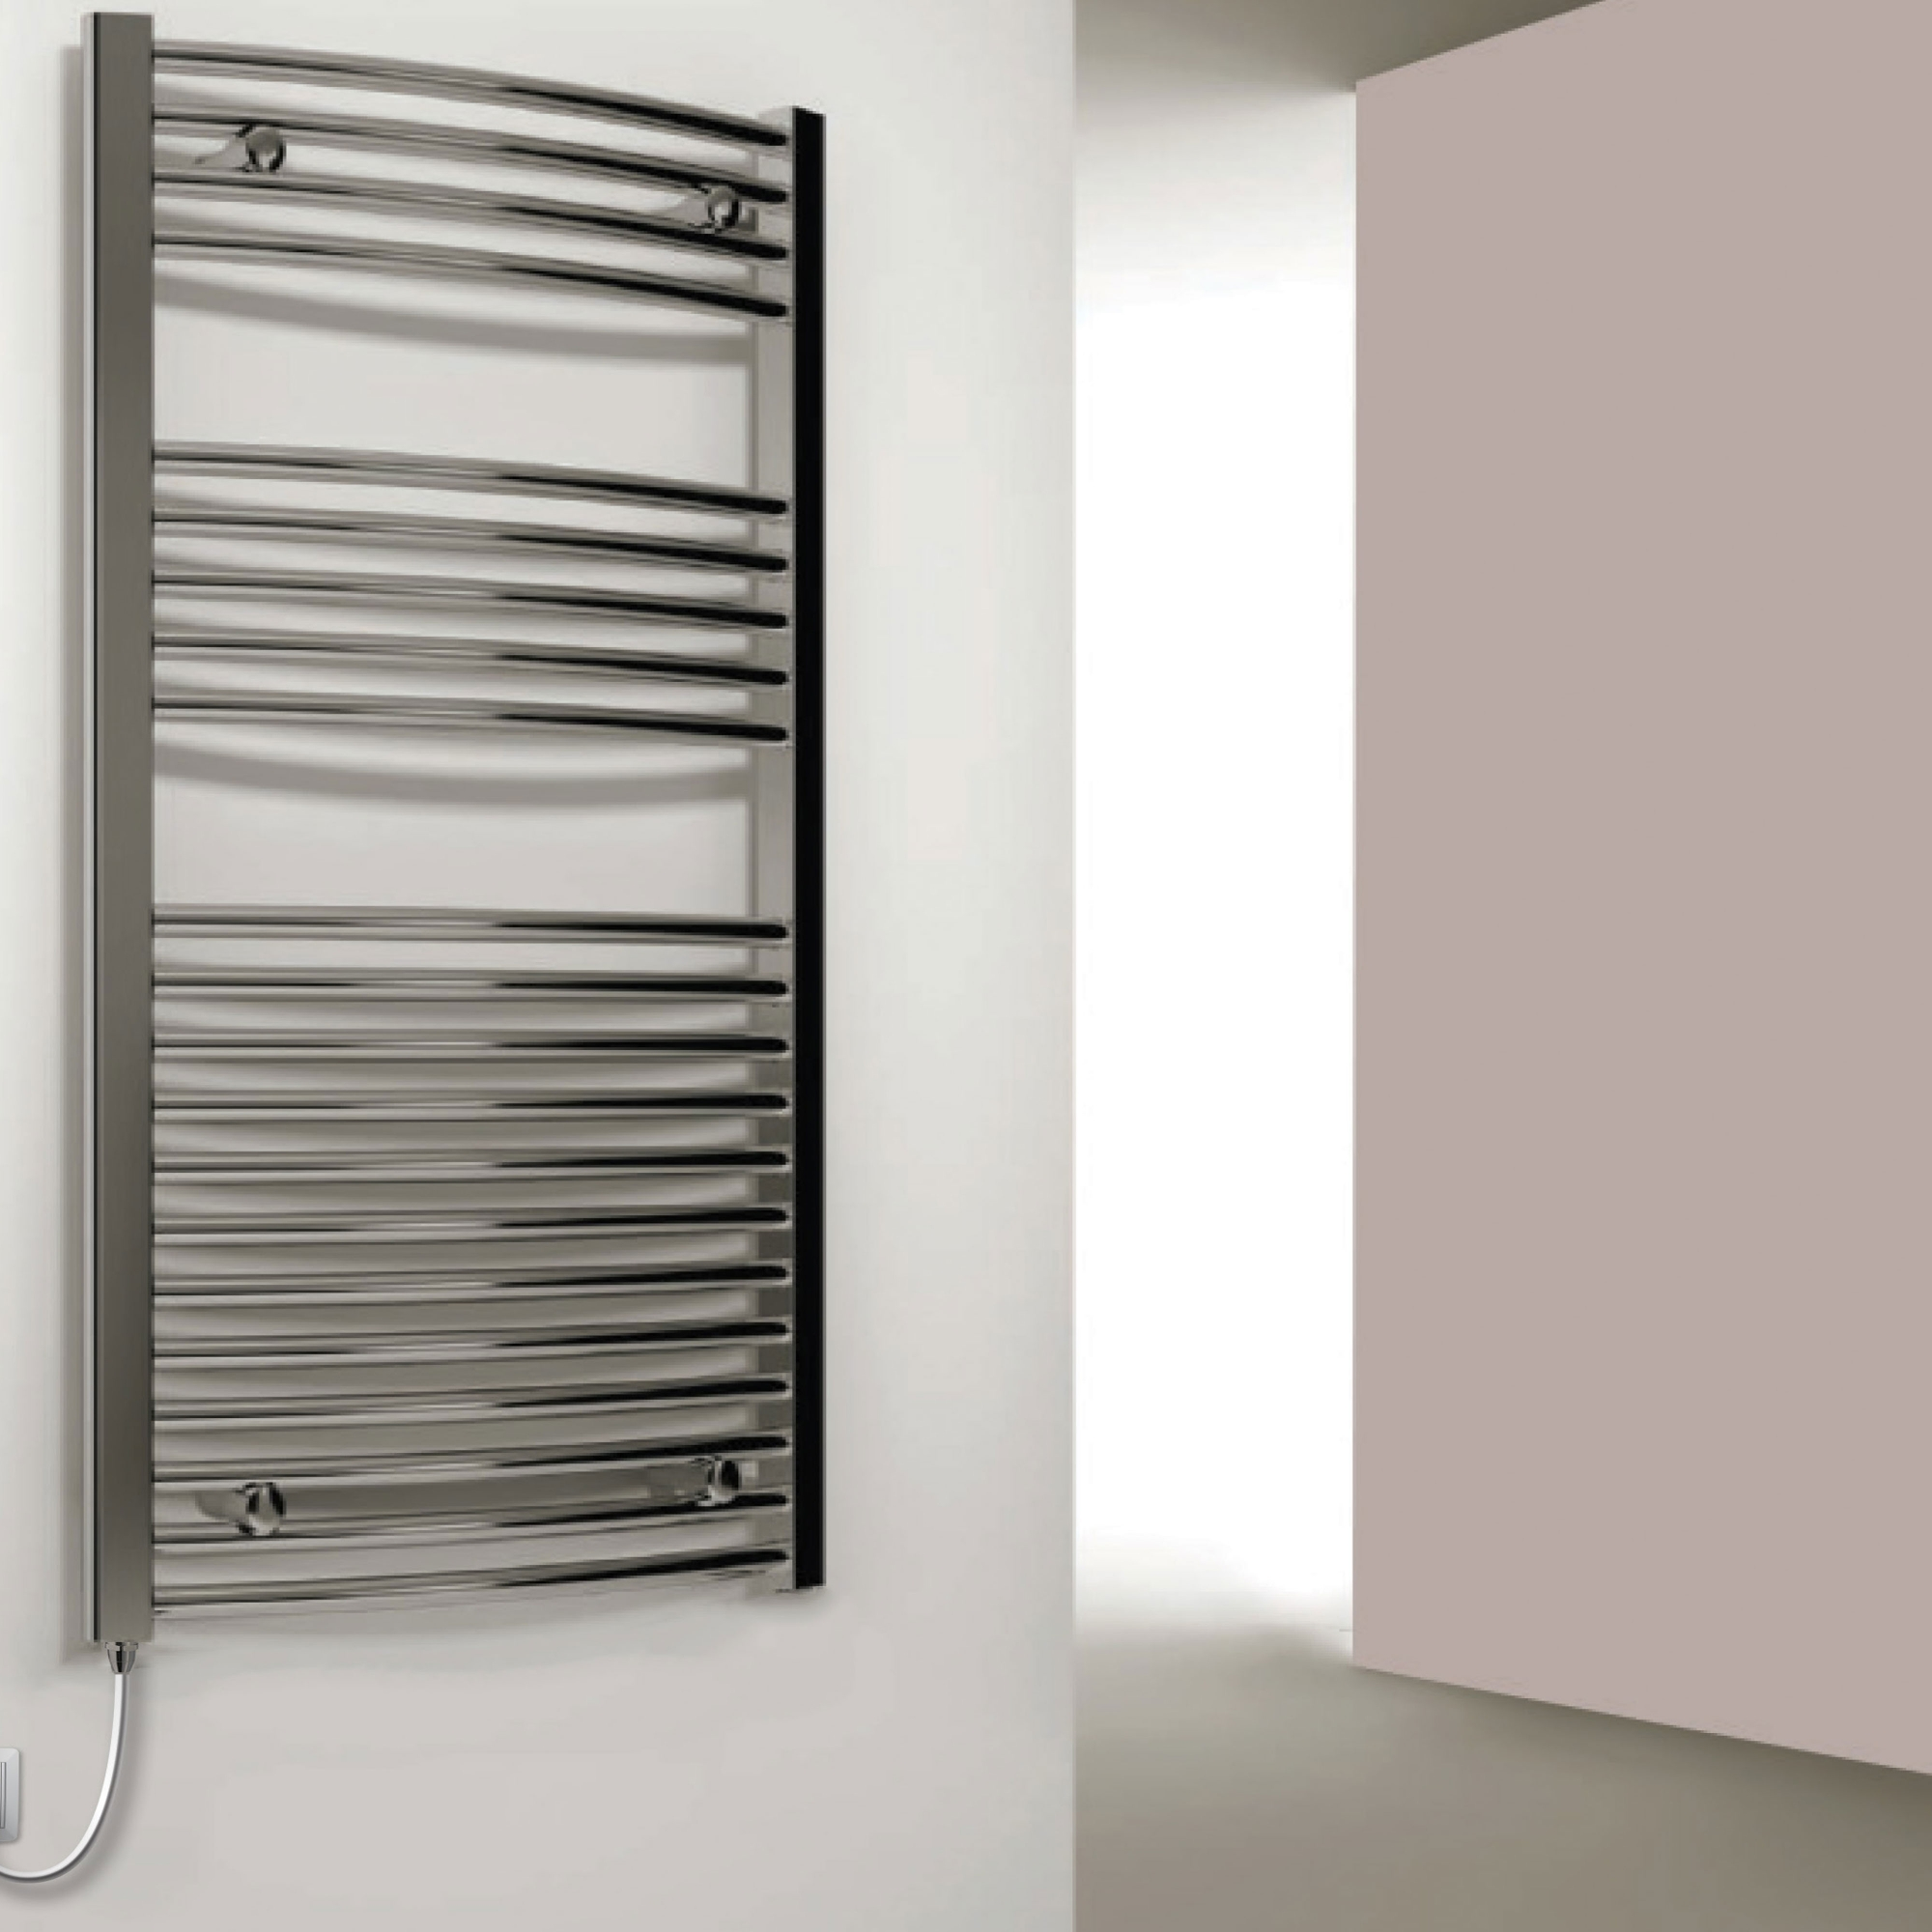 Reina Capo Curved Electric Heated Towel Rail 1200mm H x 400mm W Chrome-0